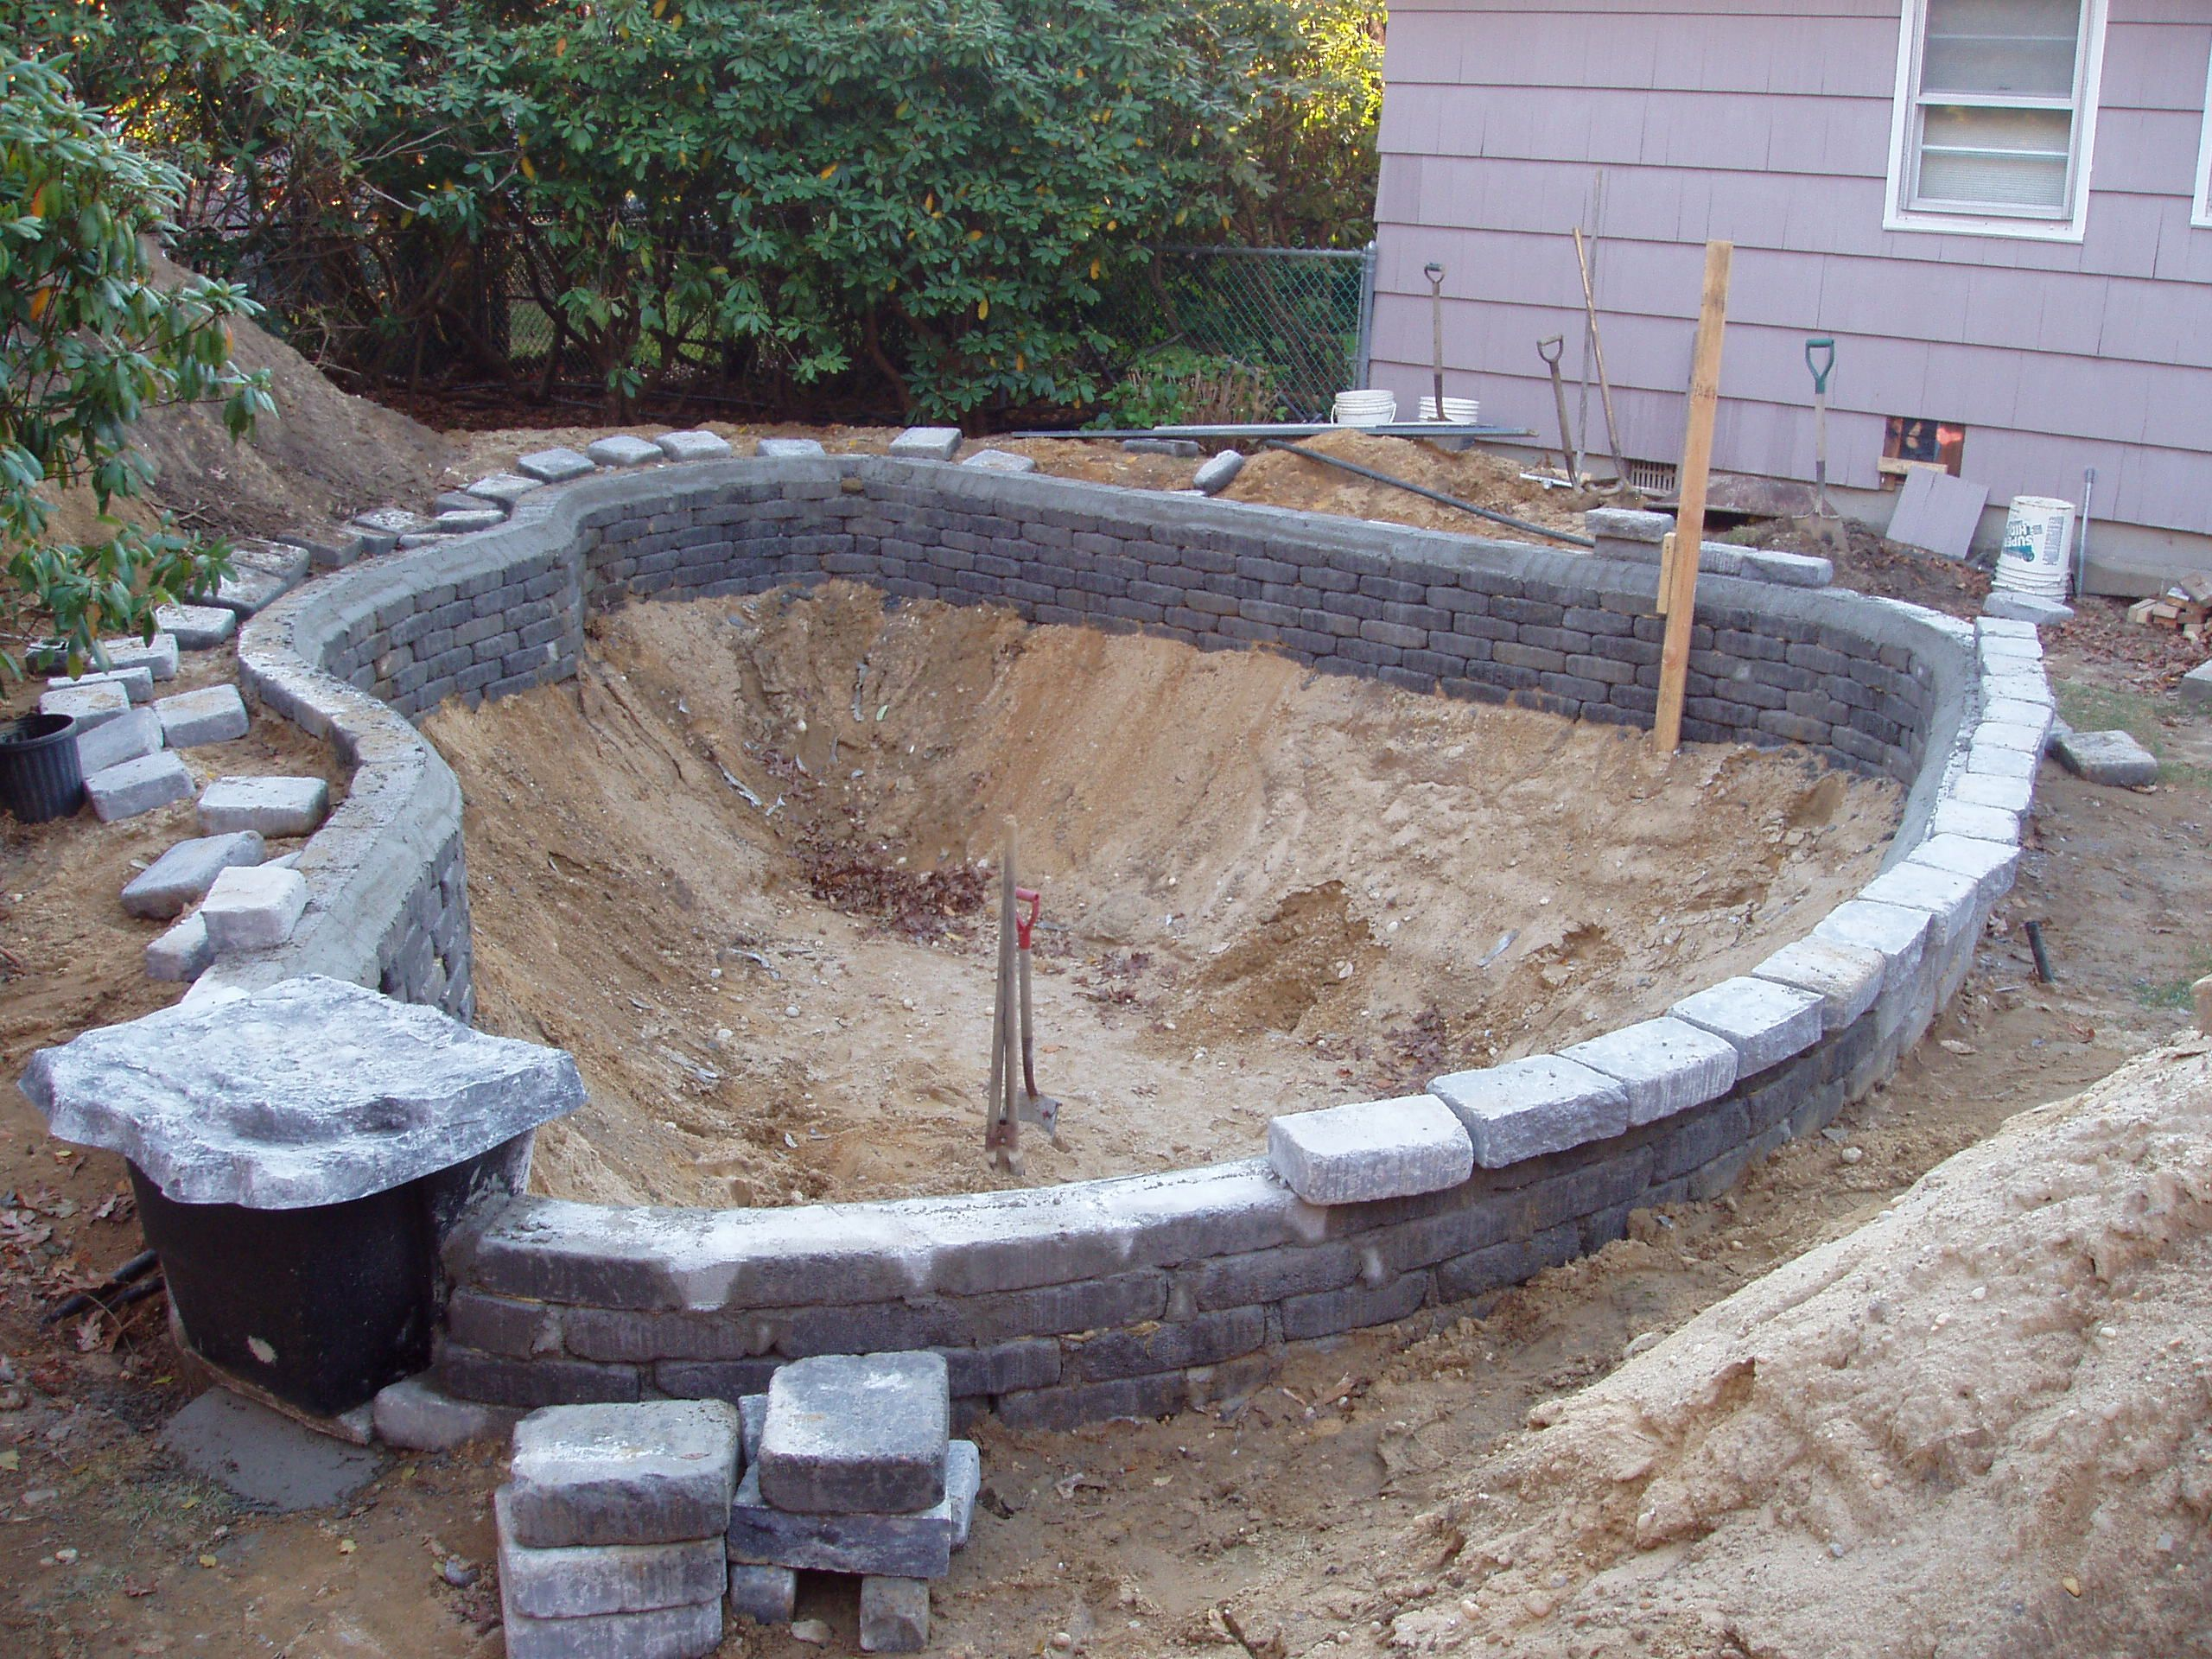 Pond design and construction google search aquaponics for Concrete fish pond construction and design